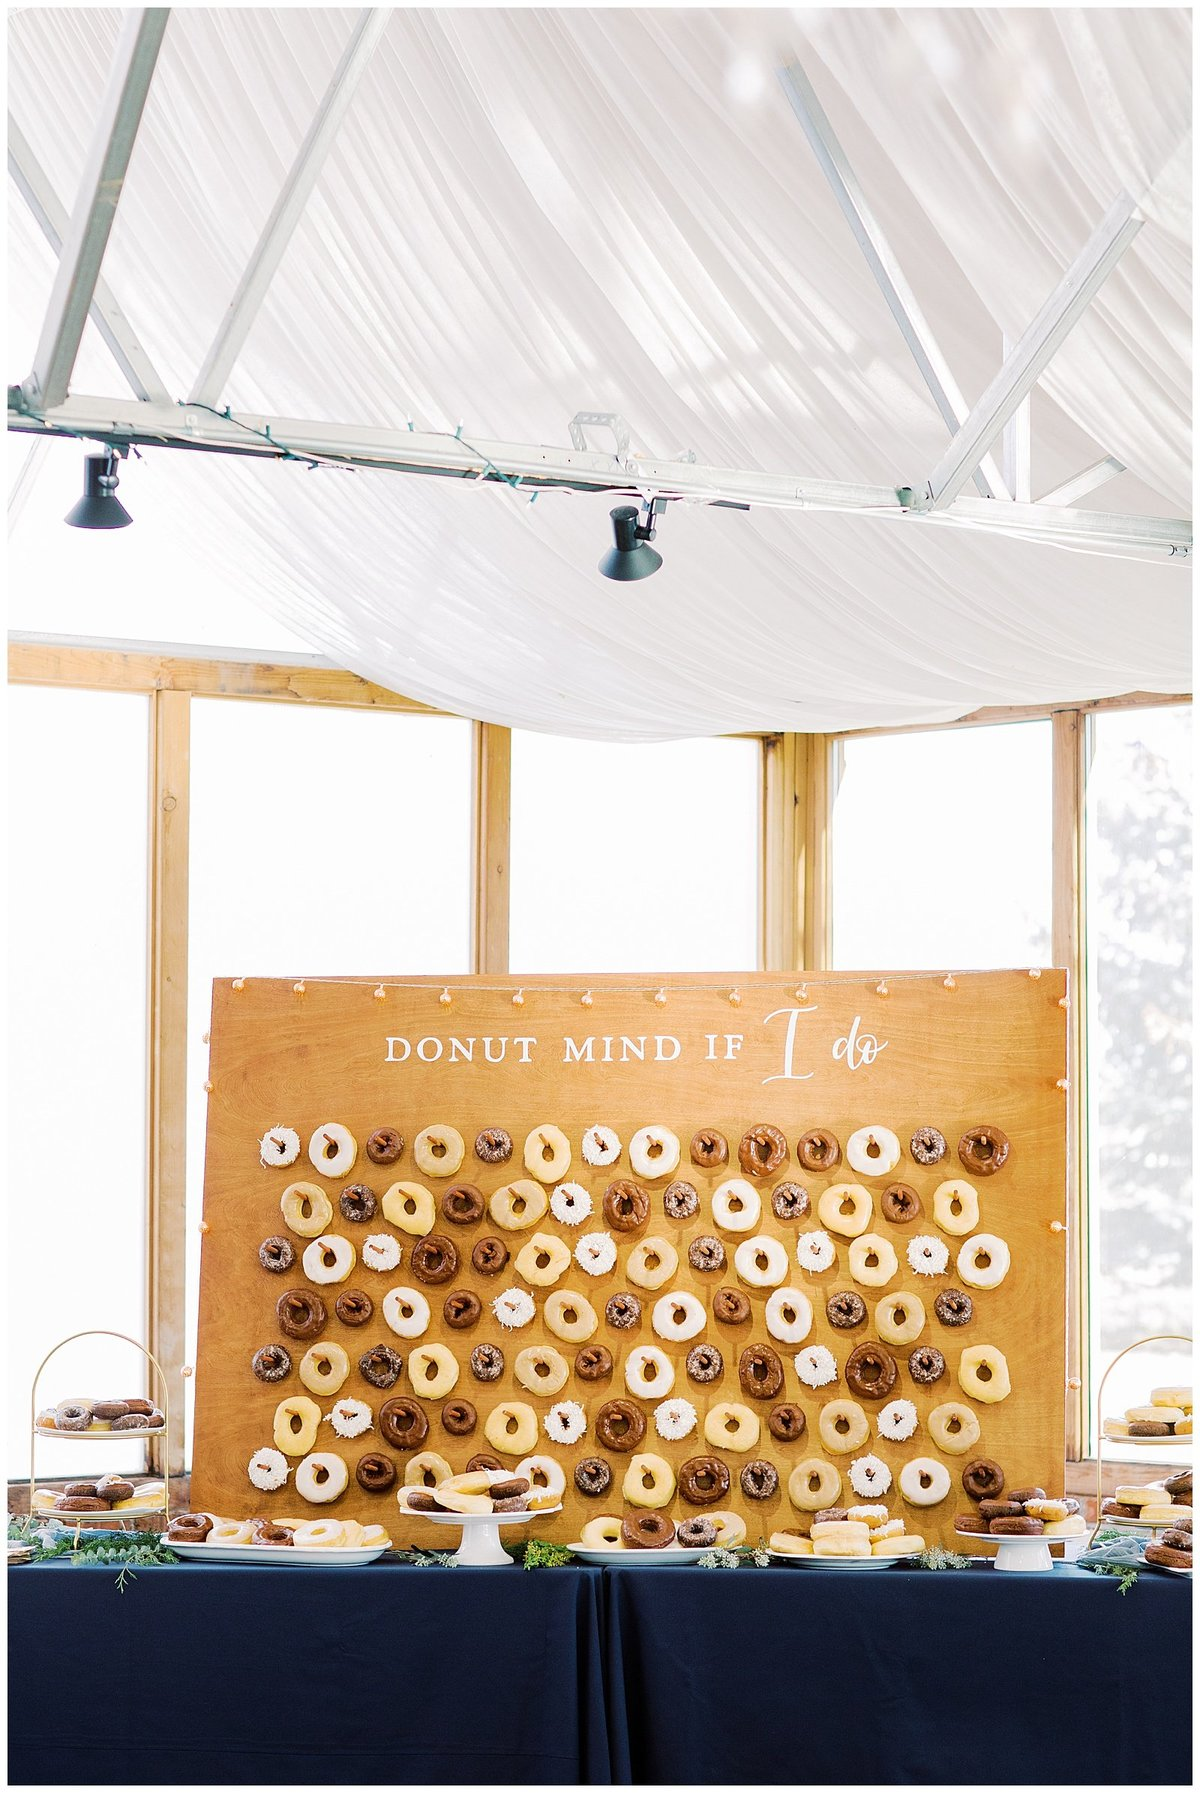 Doughnut Wall Wedding